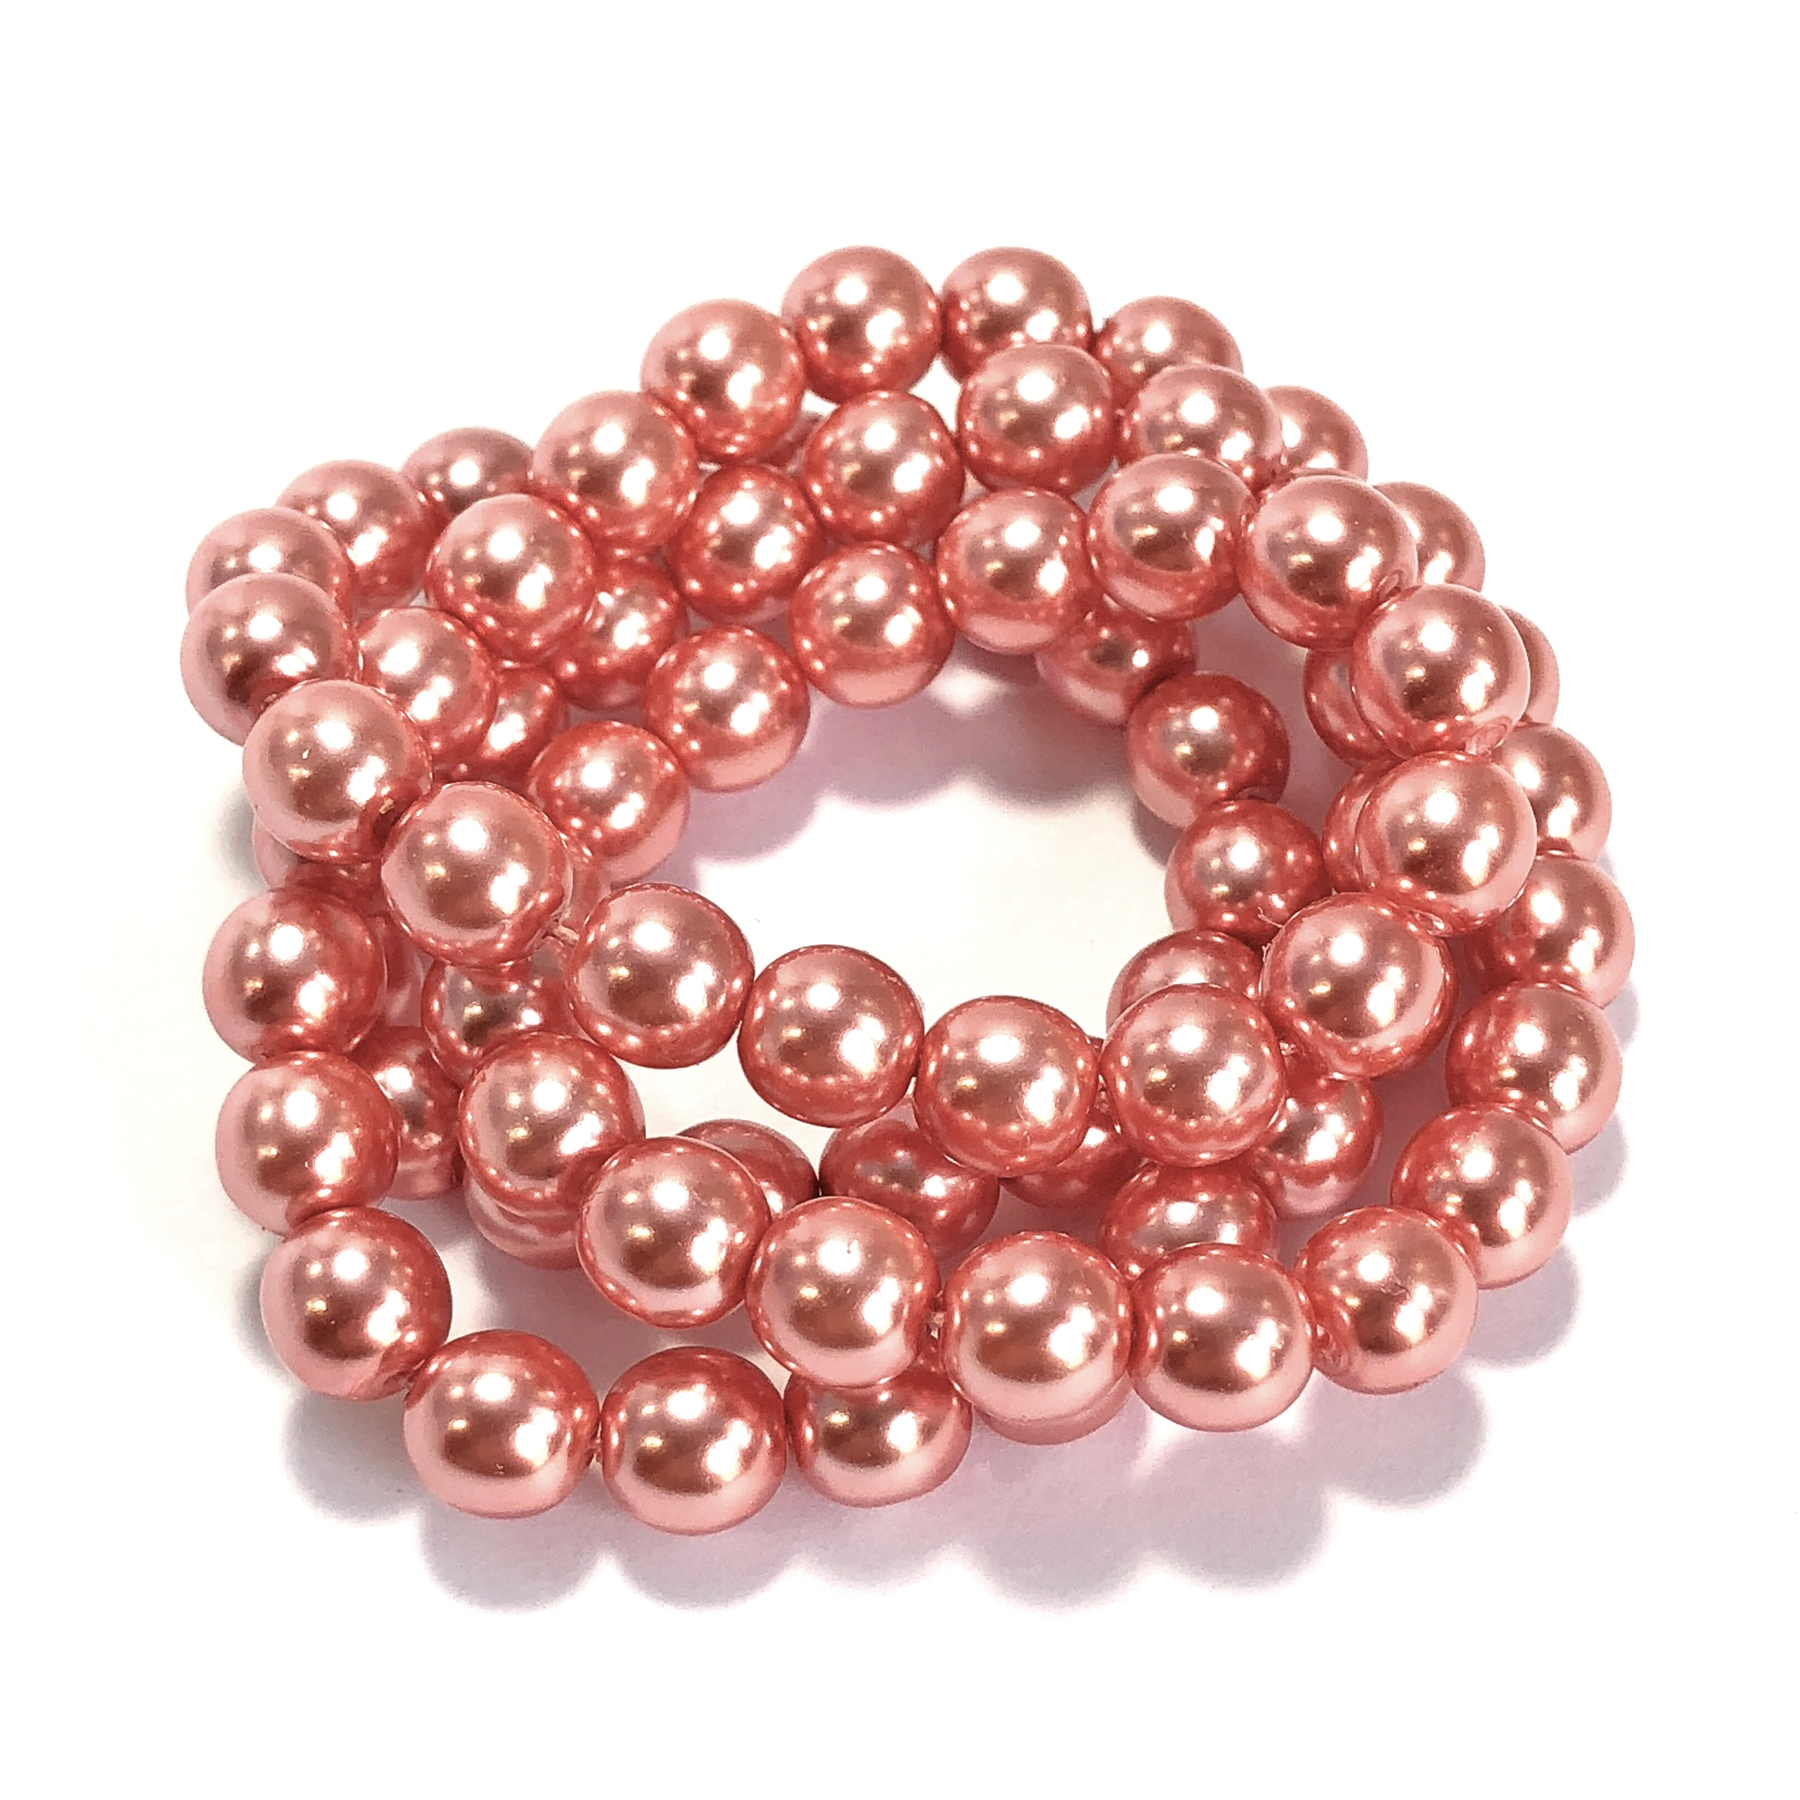 salmon pearl beads, peachy pink pearl beads, 8mm bead, glass pearl, Czech, B'sue Boutiques, bead, jewelry making, beading supplies, vintage supplies, pearl, pearl beads, glass beads, peach beads, jewelry supplies, jewelry beads, 09522